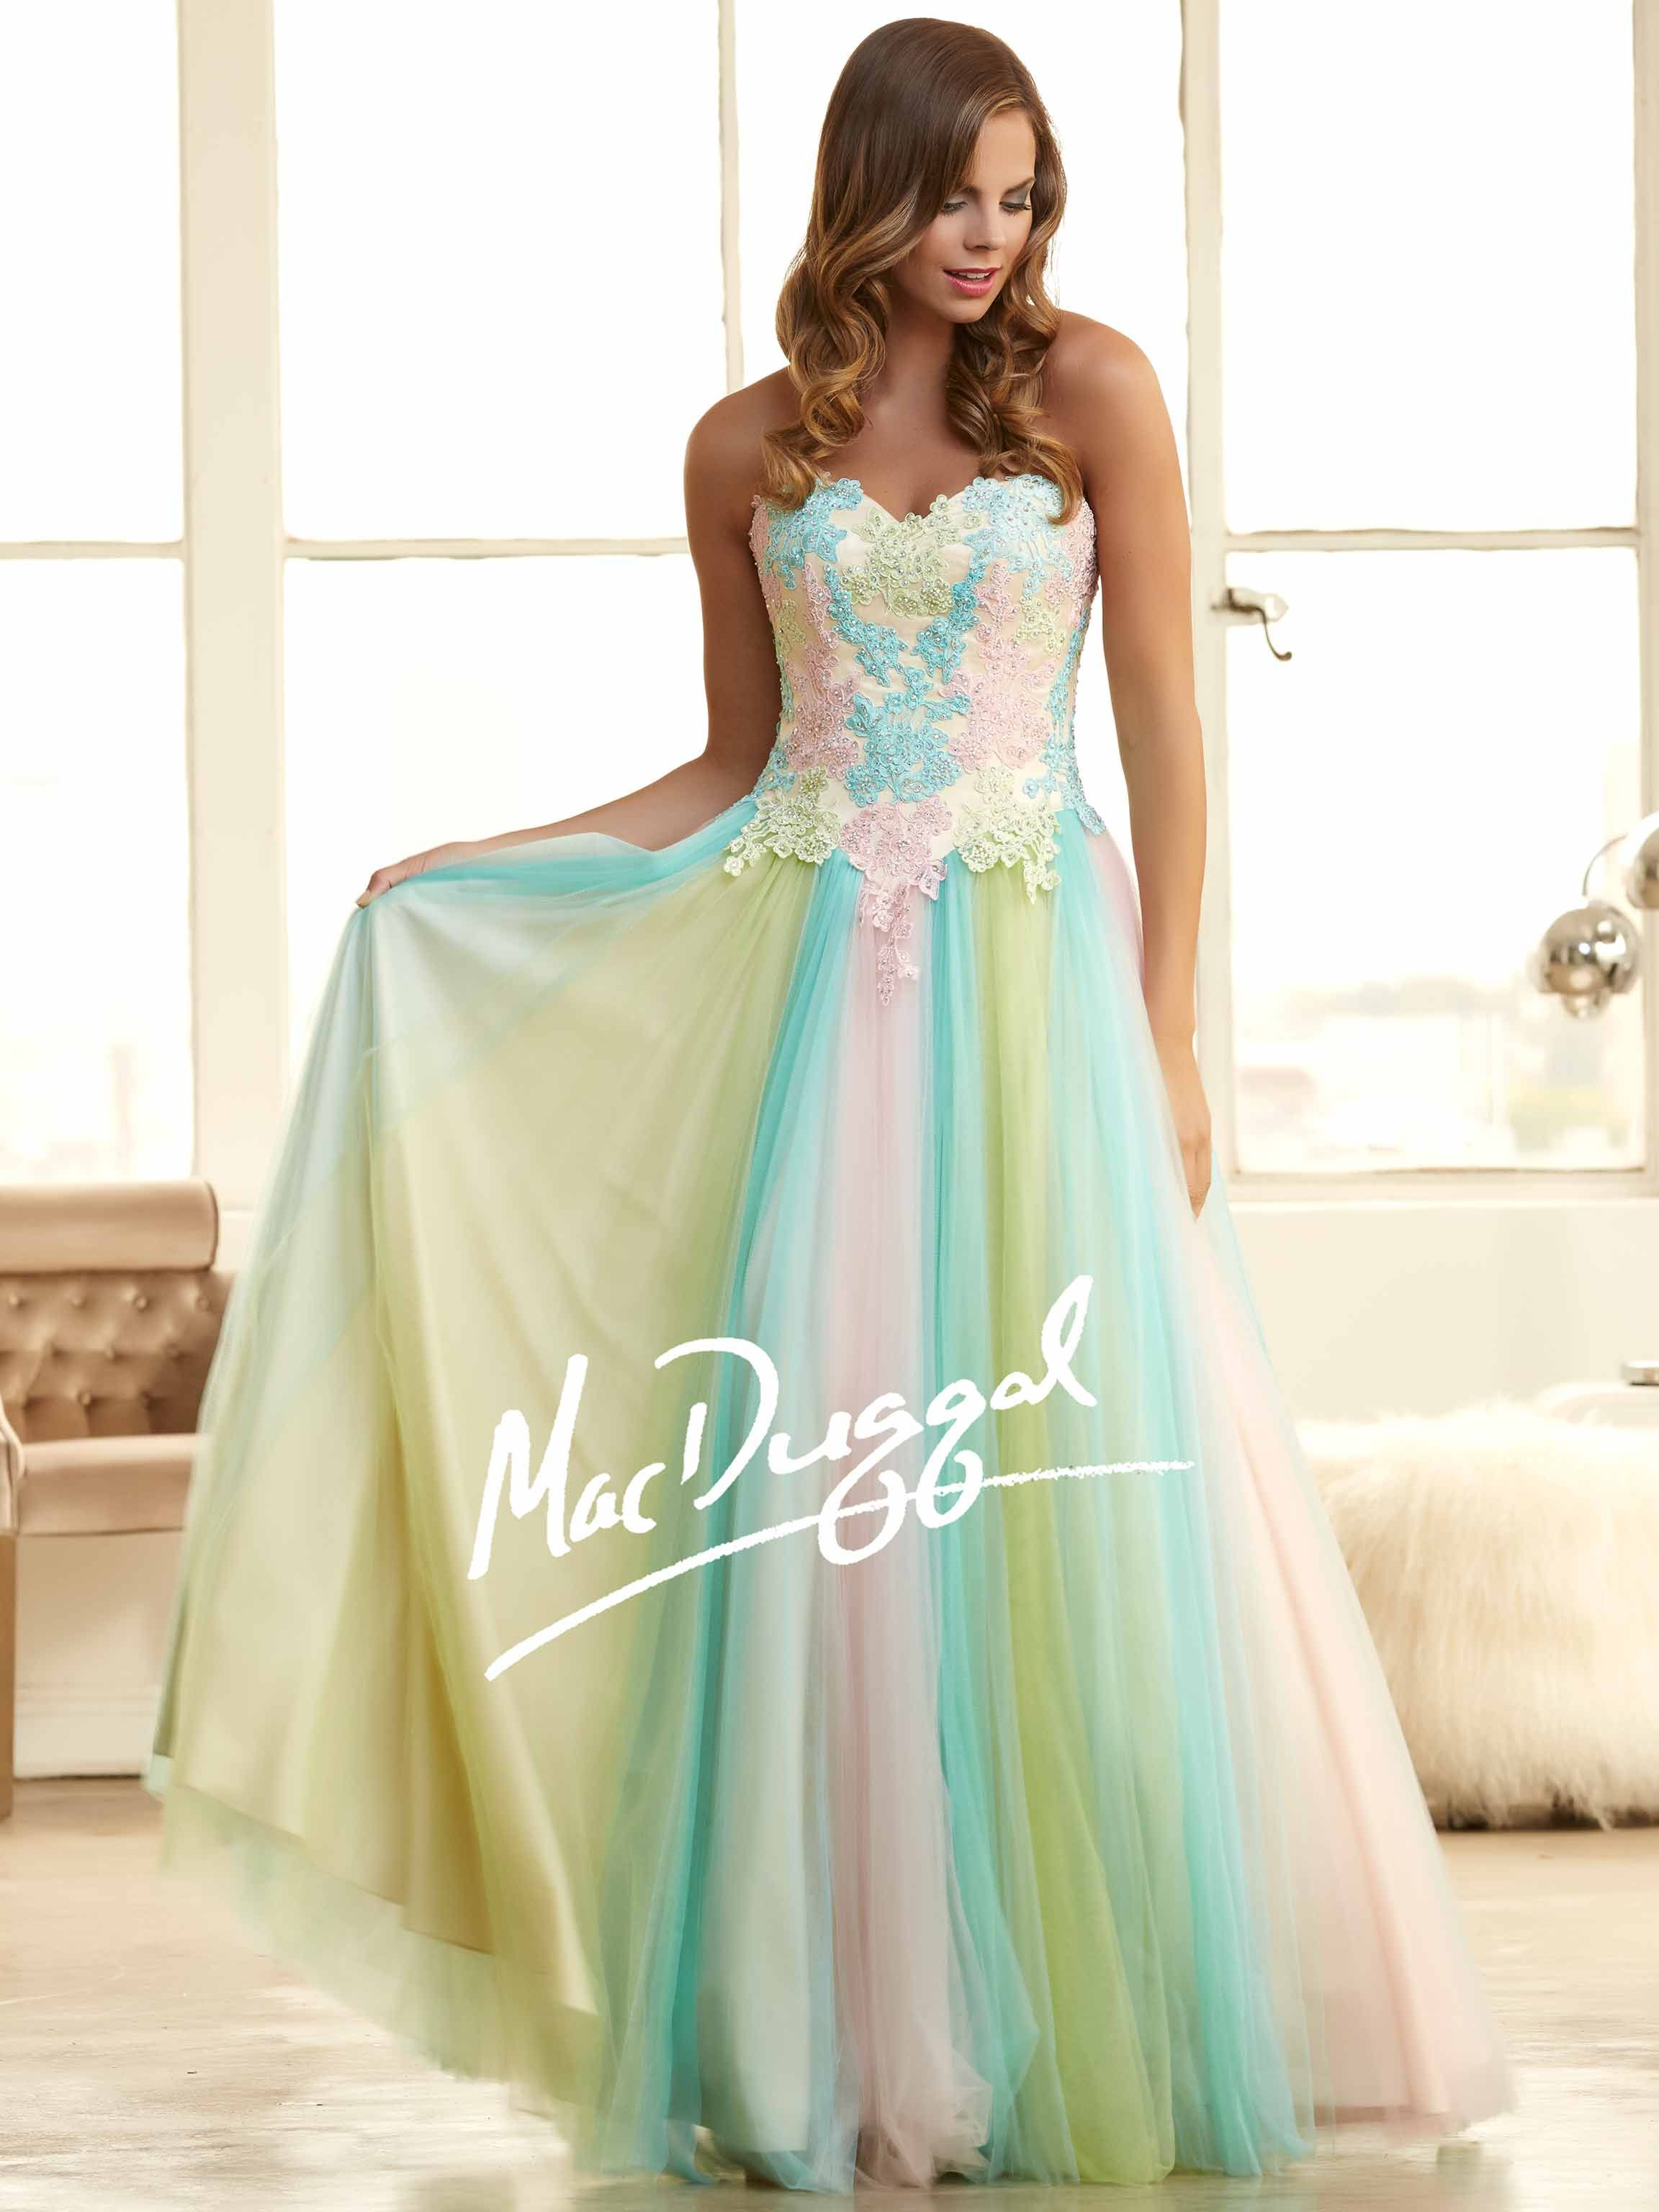 multicolor pastel prom dresses - Google Search | Rachel wedding ...